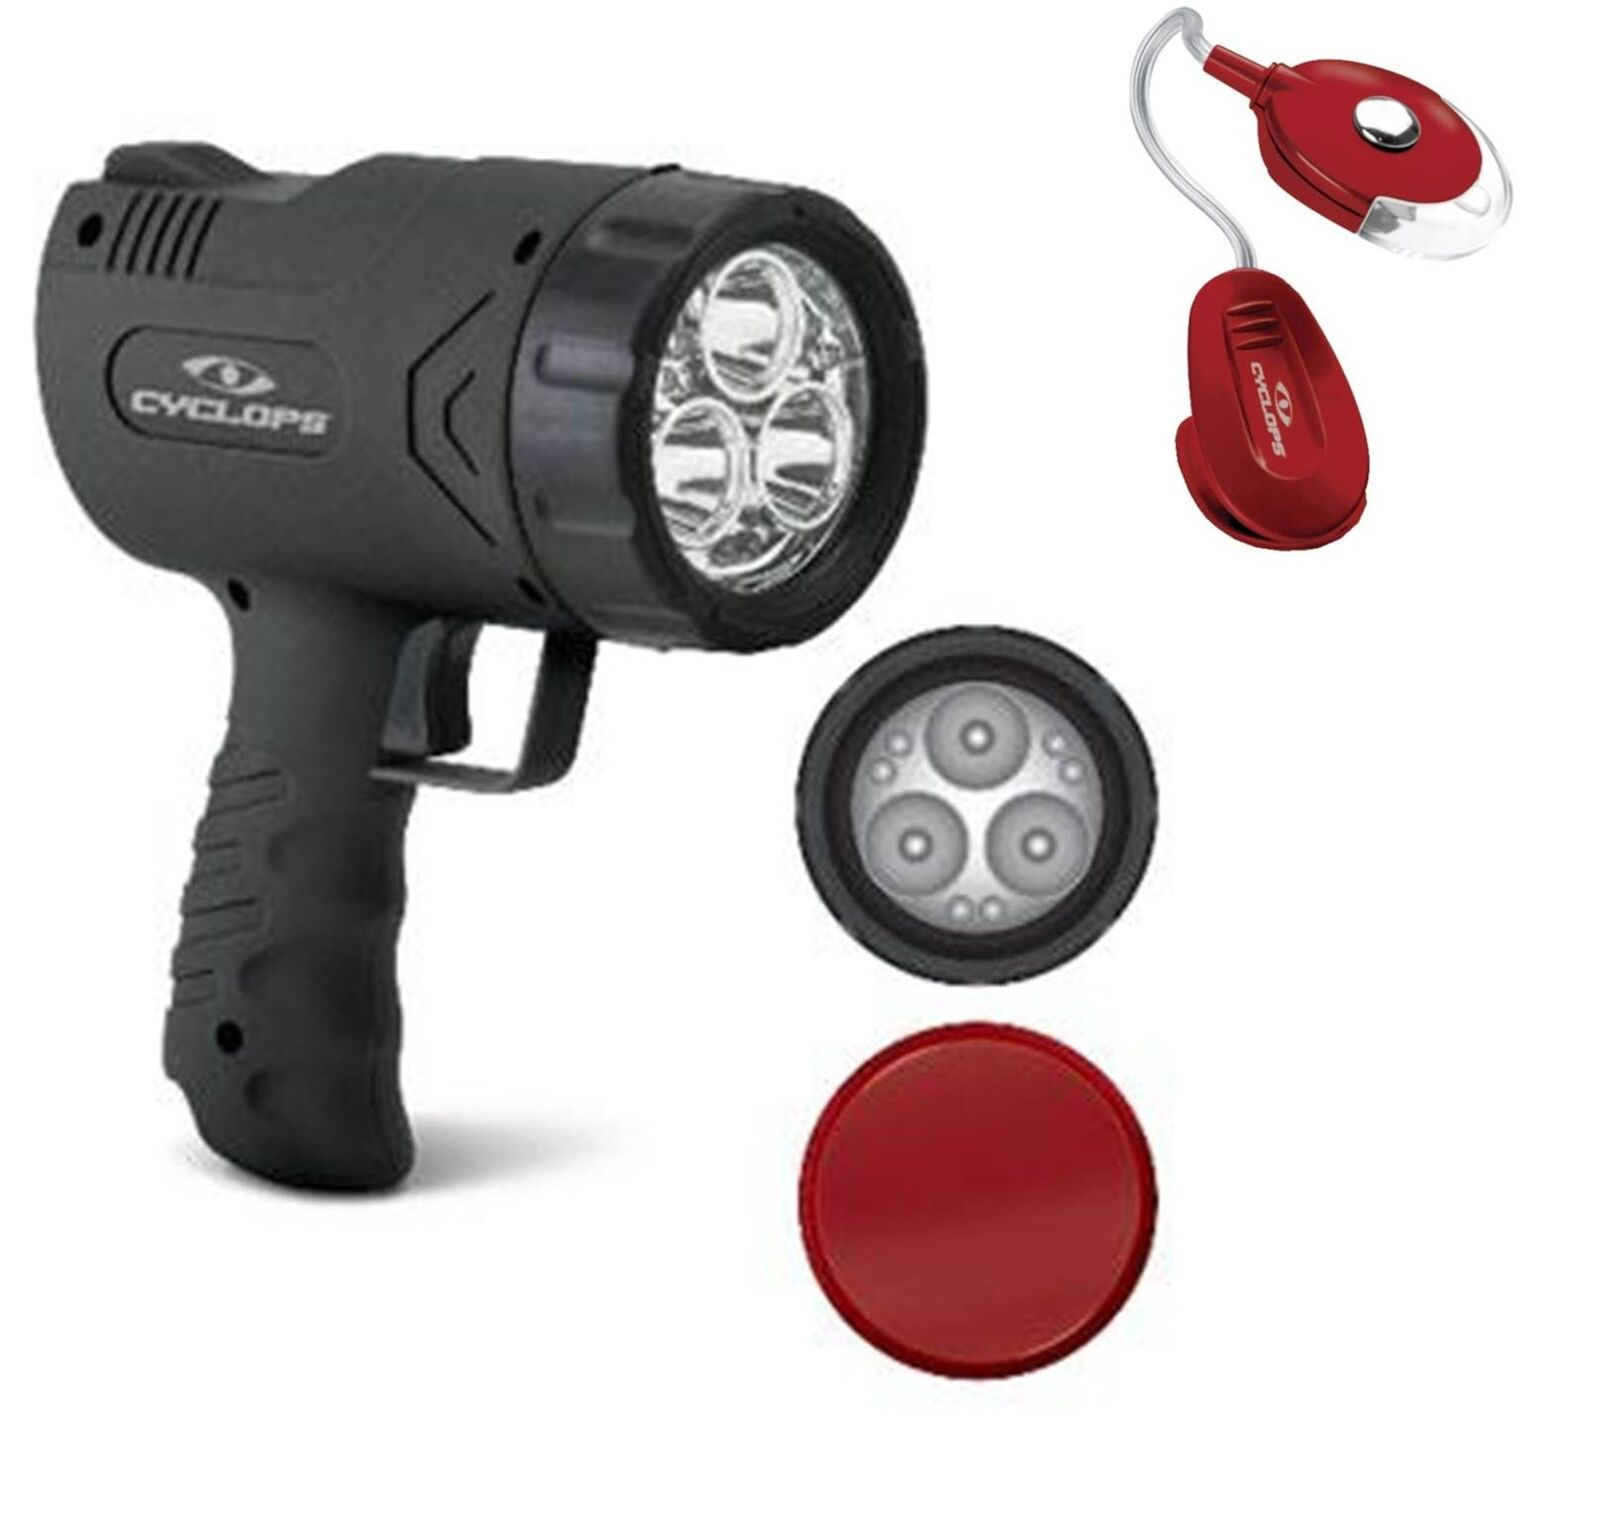 Hunting Spotlight Rechargeable 1100 Lumen Handheld Cyclops Bonus Clip Light